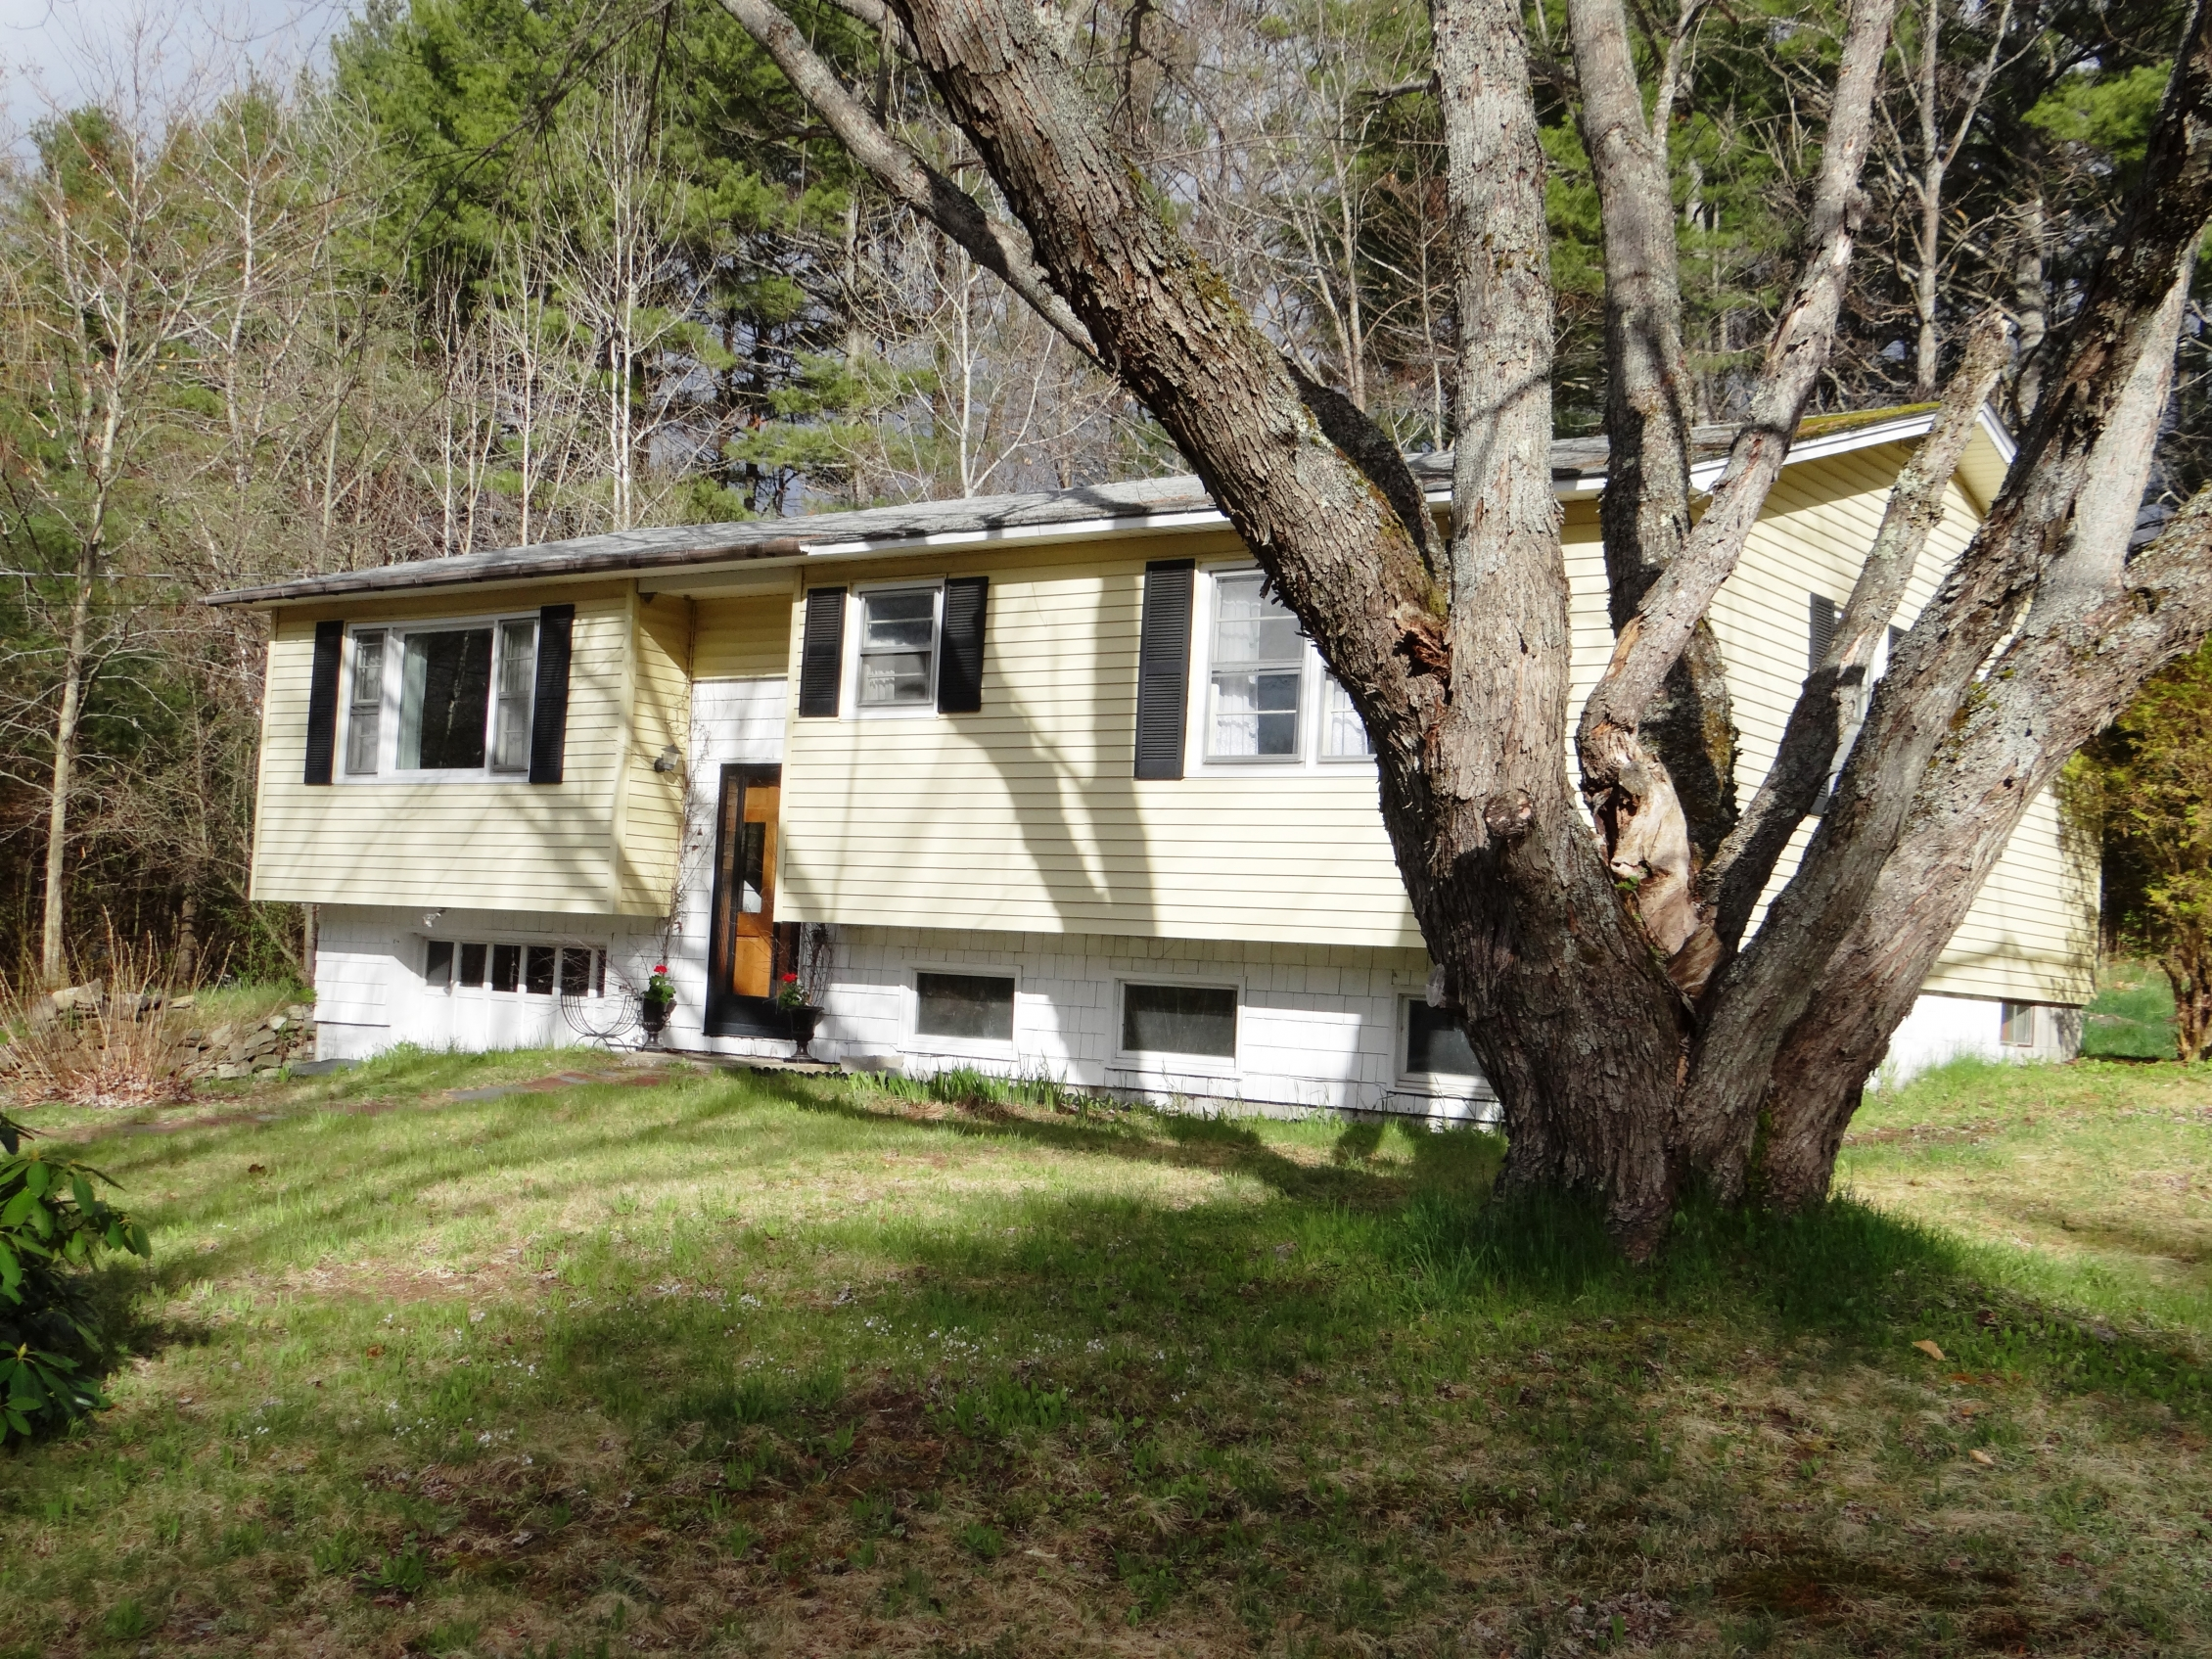 5 Chiefs Dr, Canaan, NH 03741